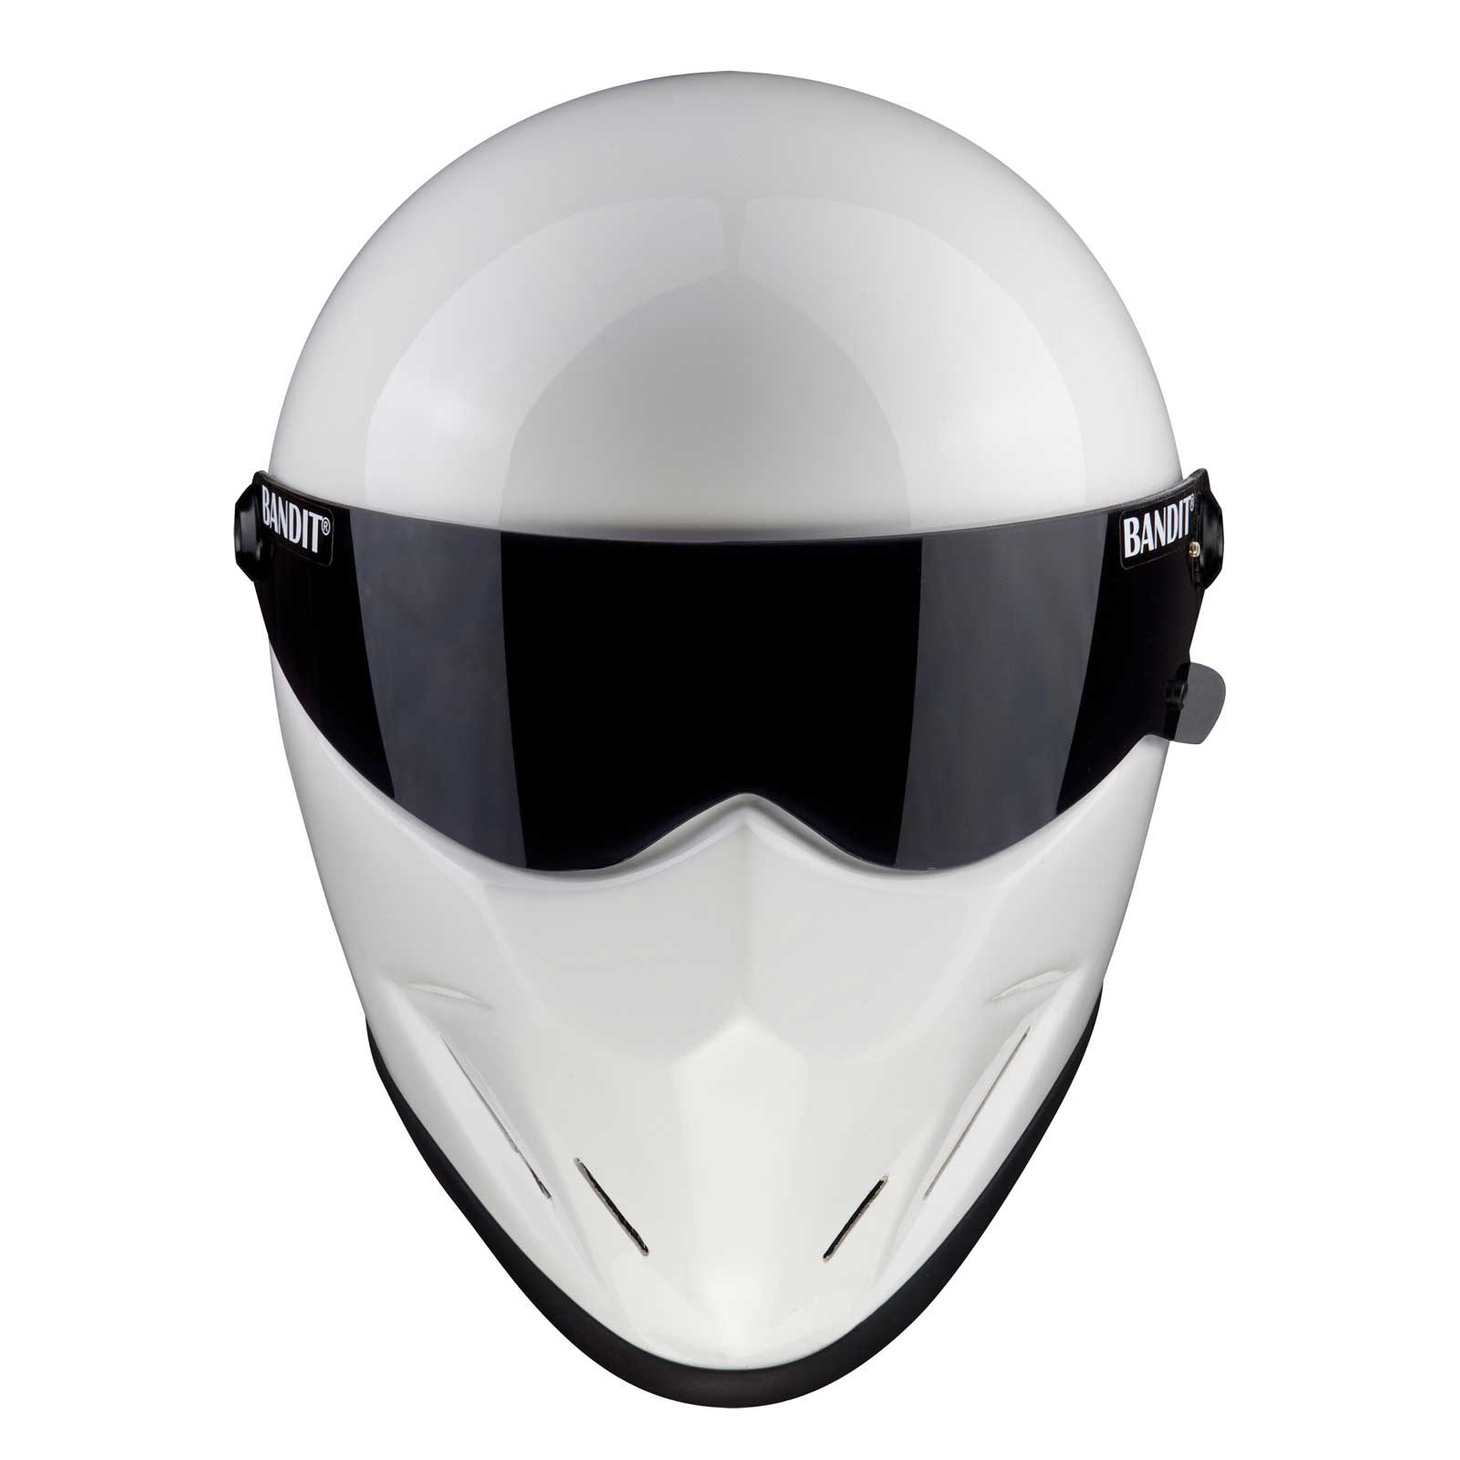 Bandit - Crystal Helmet - for Streetfighter, Mad Max - Fibreglass – Picture 4